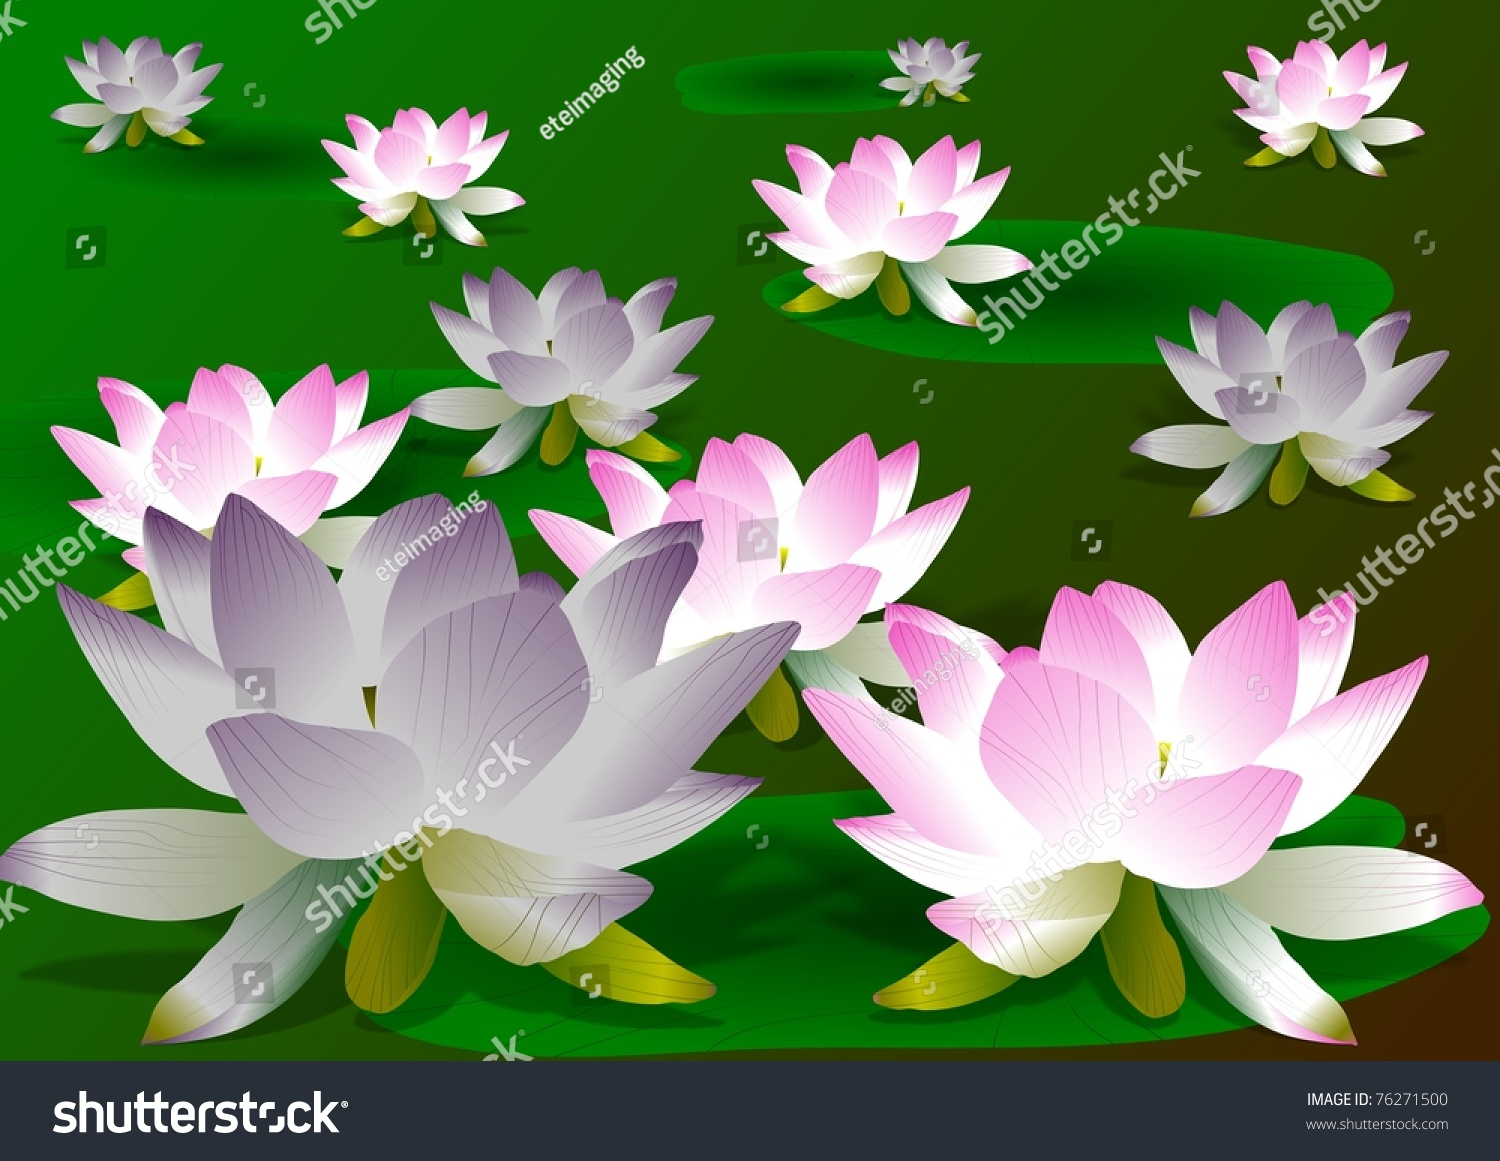 Pink purple lotus flowers leaves on stock illustration 76271500 pink and purple lotus flowers with leaves on a green background lotus flowers izmirmasajfo Gallery